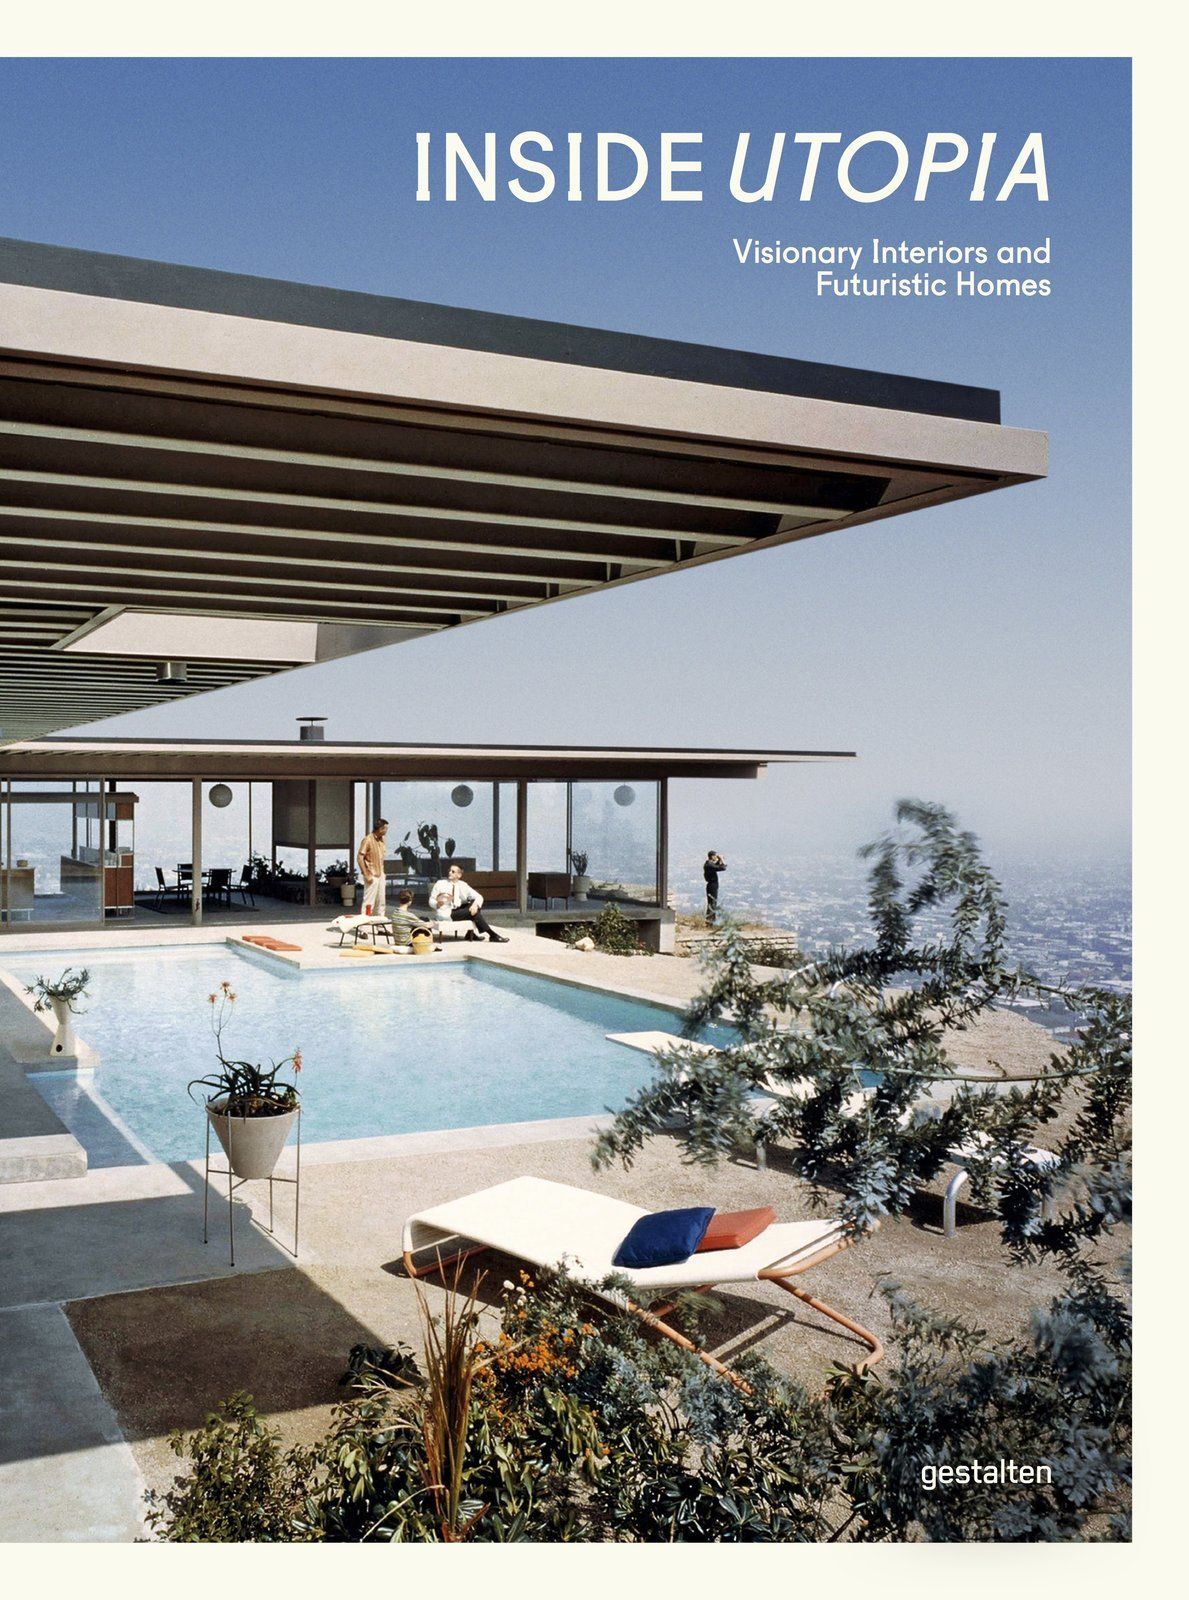 A New Book Celebrates Modernism With Futuristic Homes and Visionary ...